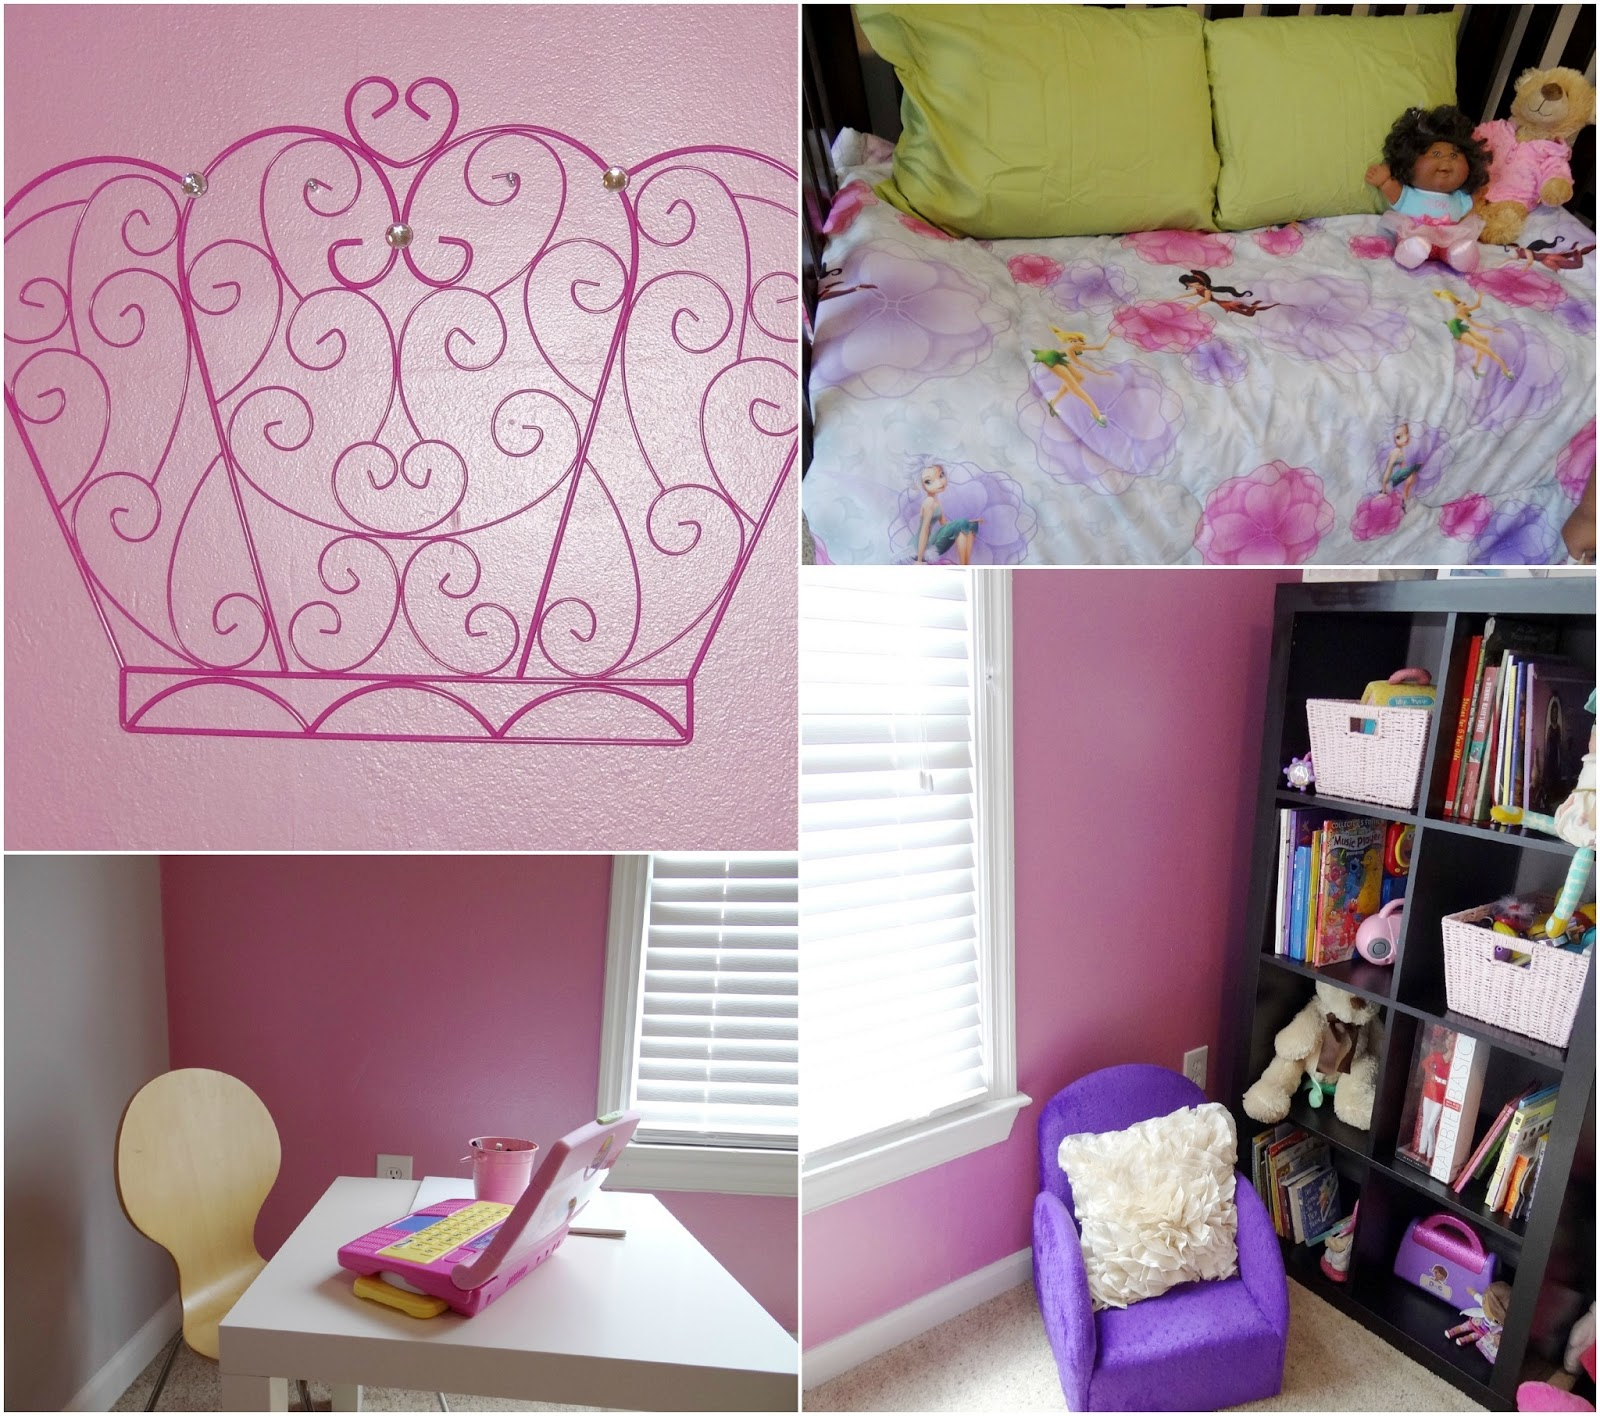 P's Bedroom Makeover Party #DisneyPaintMom {Before + After